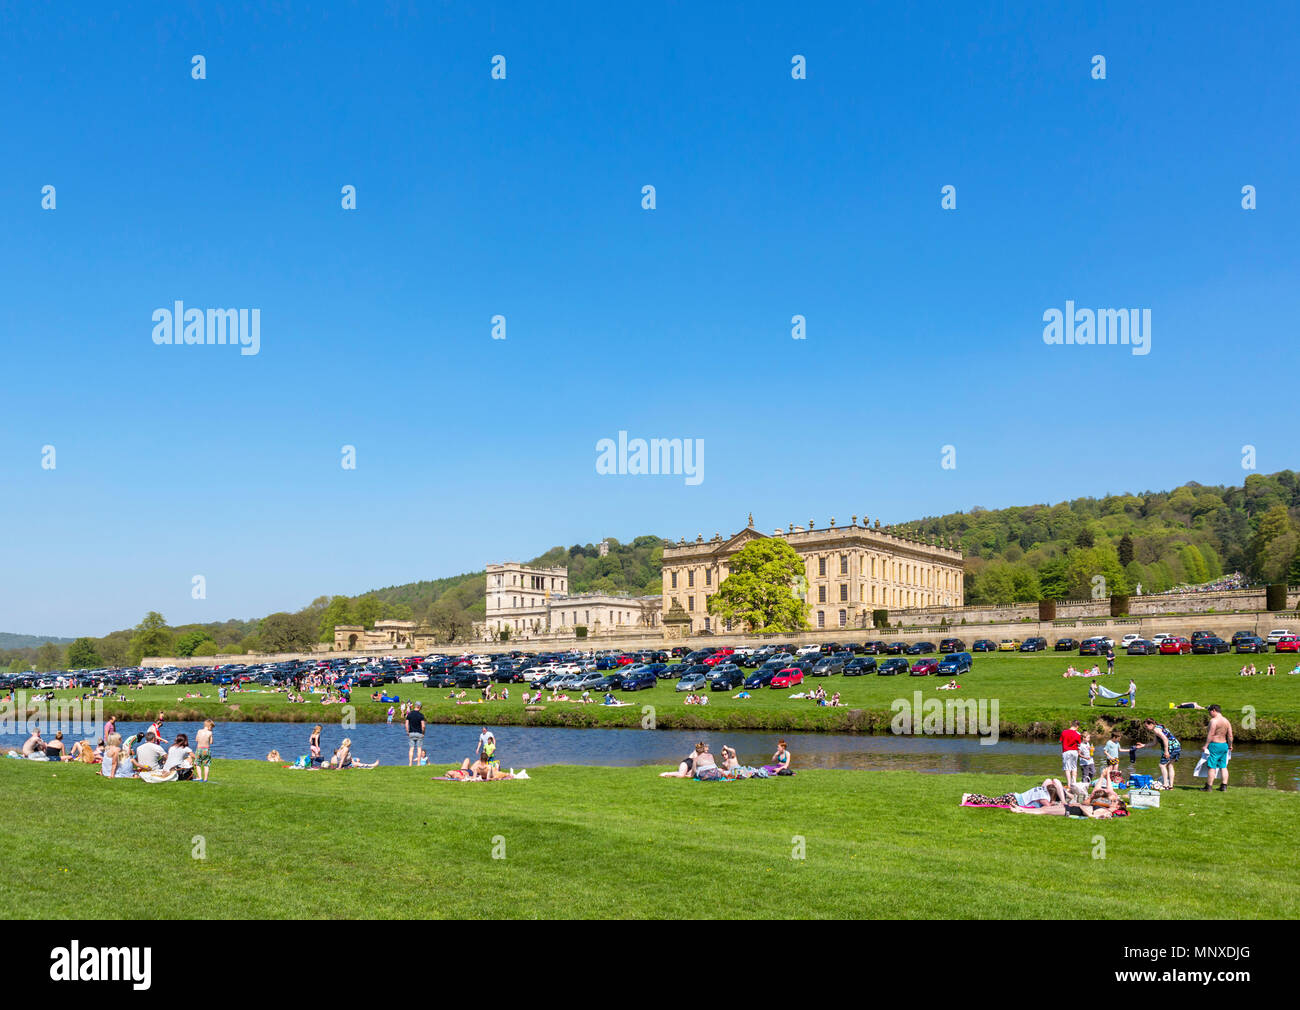 Crowds of visitors at Chatsworth Park on a busy May bank holiday weekend in 2018, Chatsworth House,  Derbyshire, England, UK - Stock Image